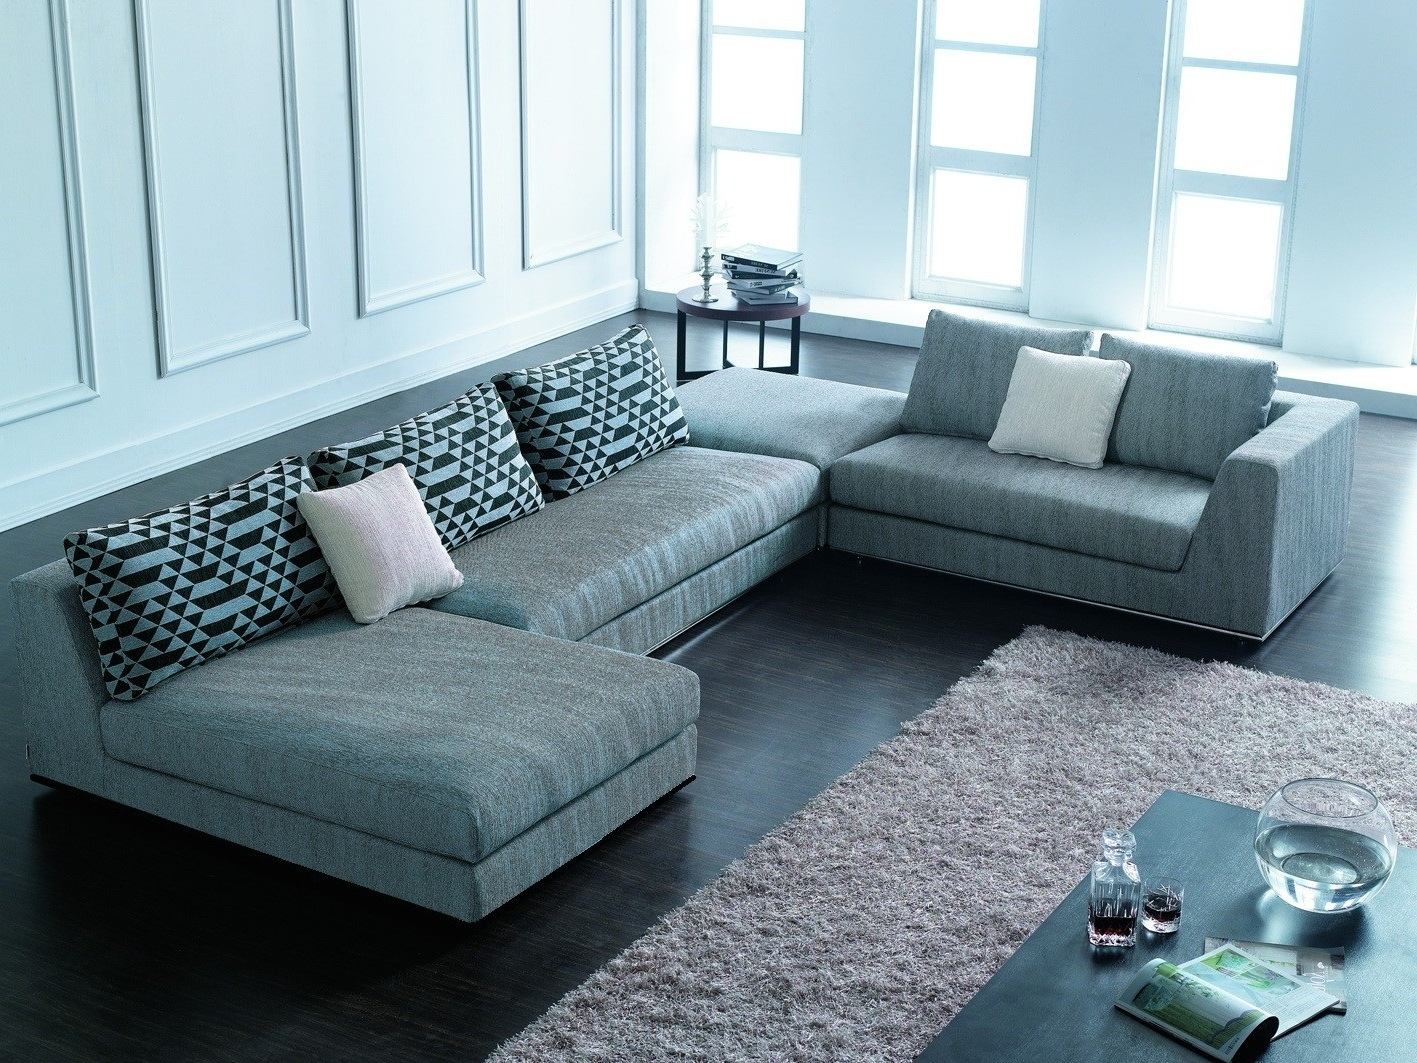 Most Comfortable Sectional Couches — Cabinets, Beds, Sofas And With Regard To 2018 Modern Sectional Sofas (View 14 of 20)